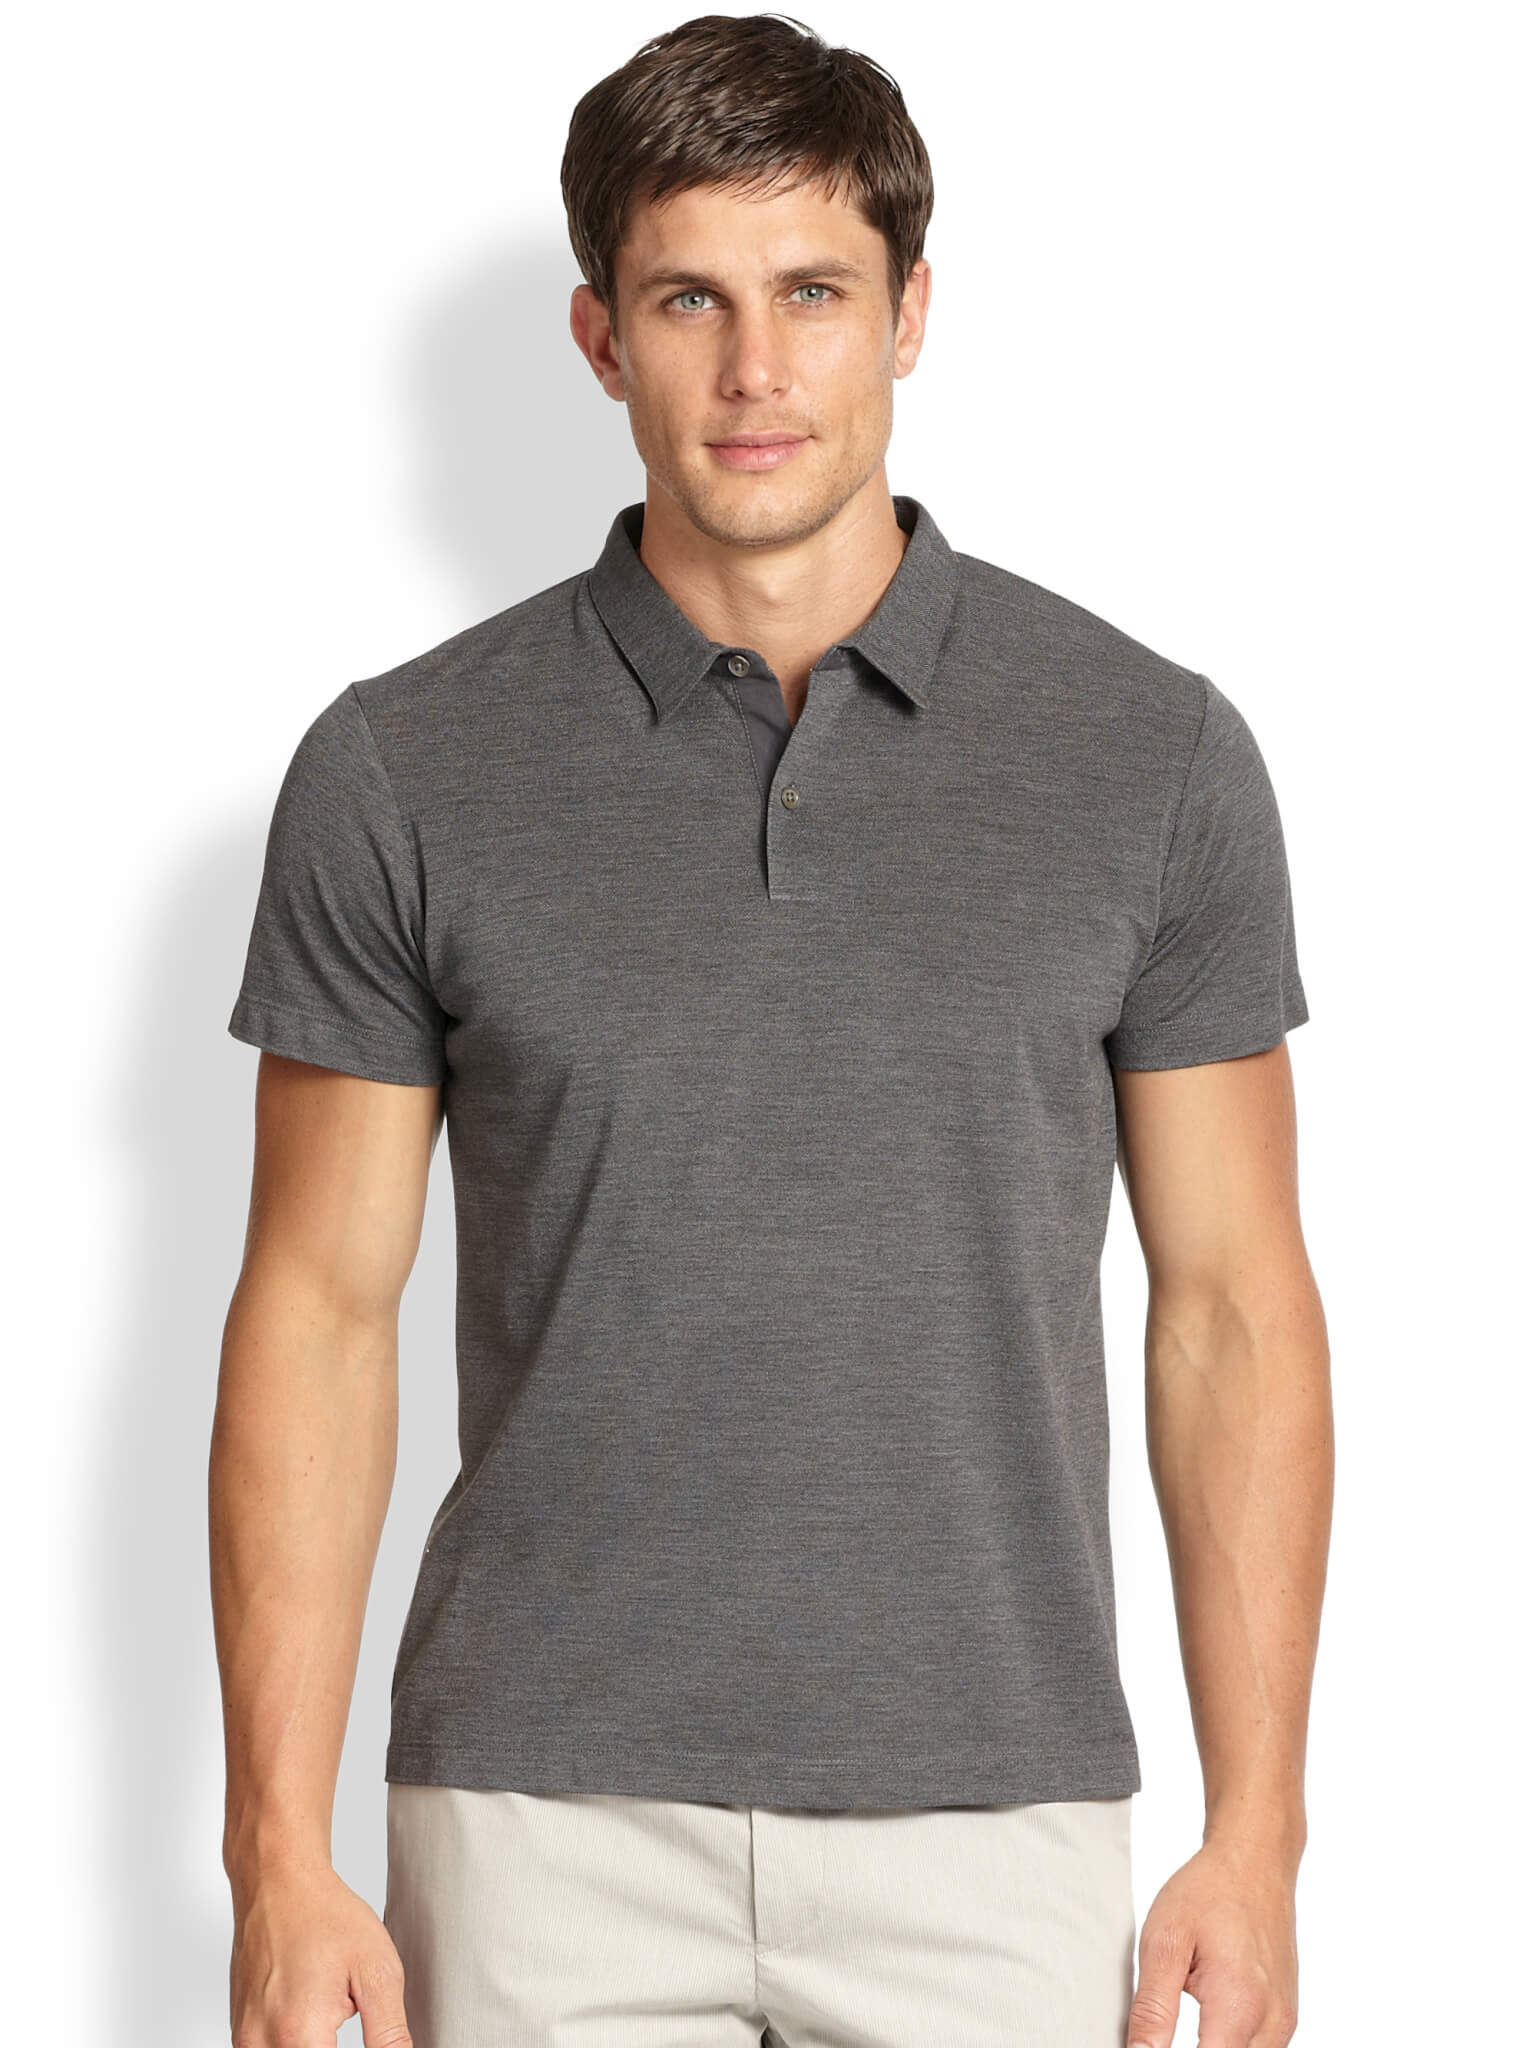 Different branded polo shirts for men